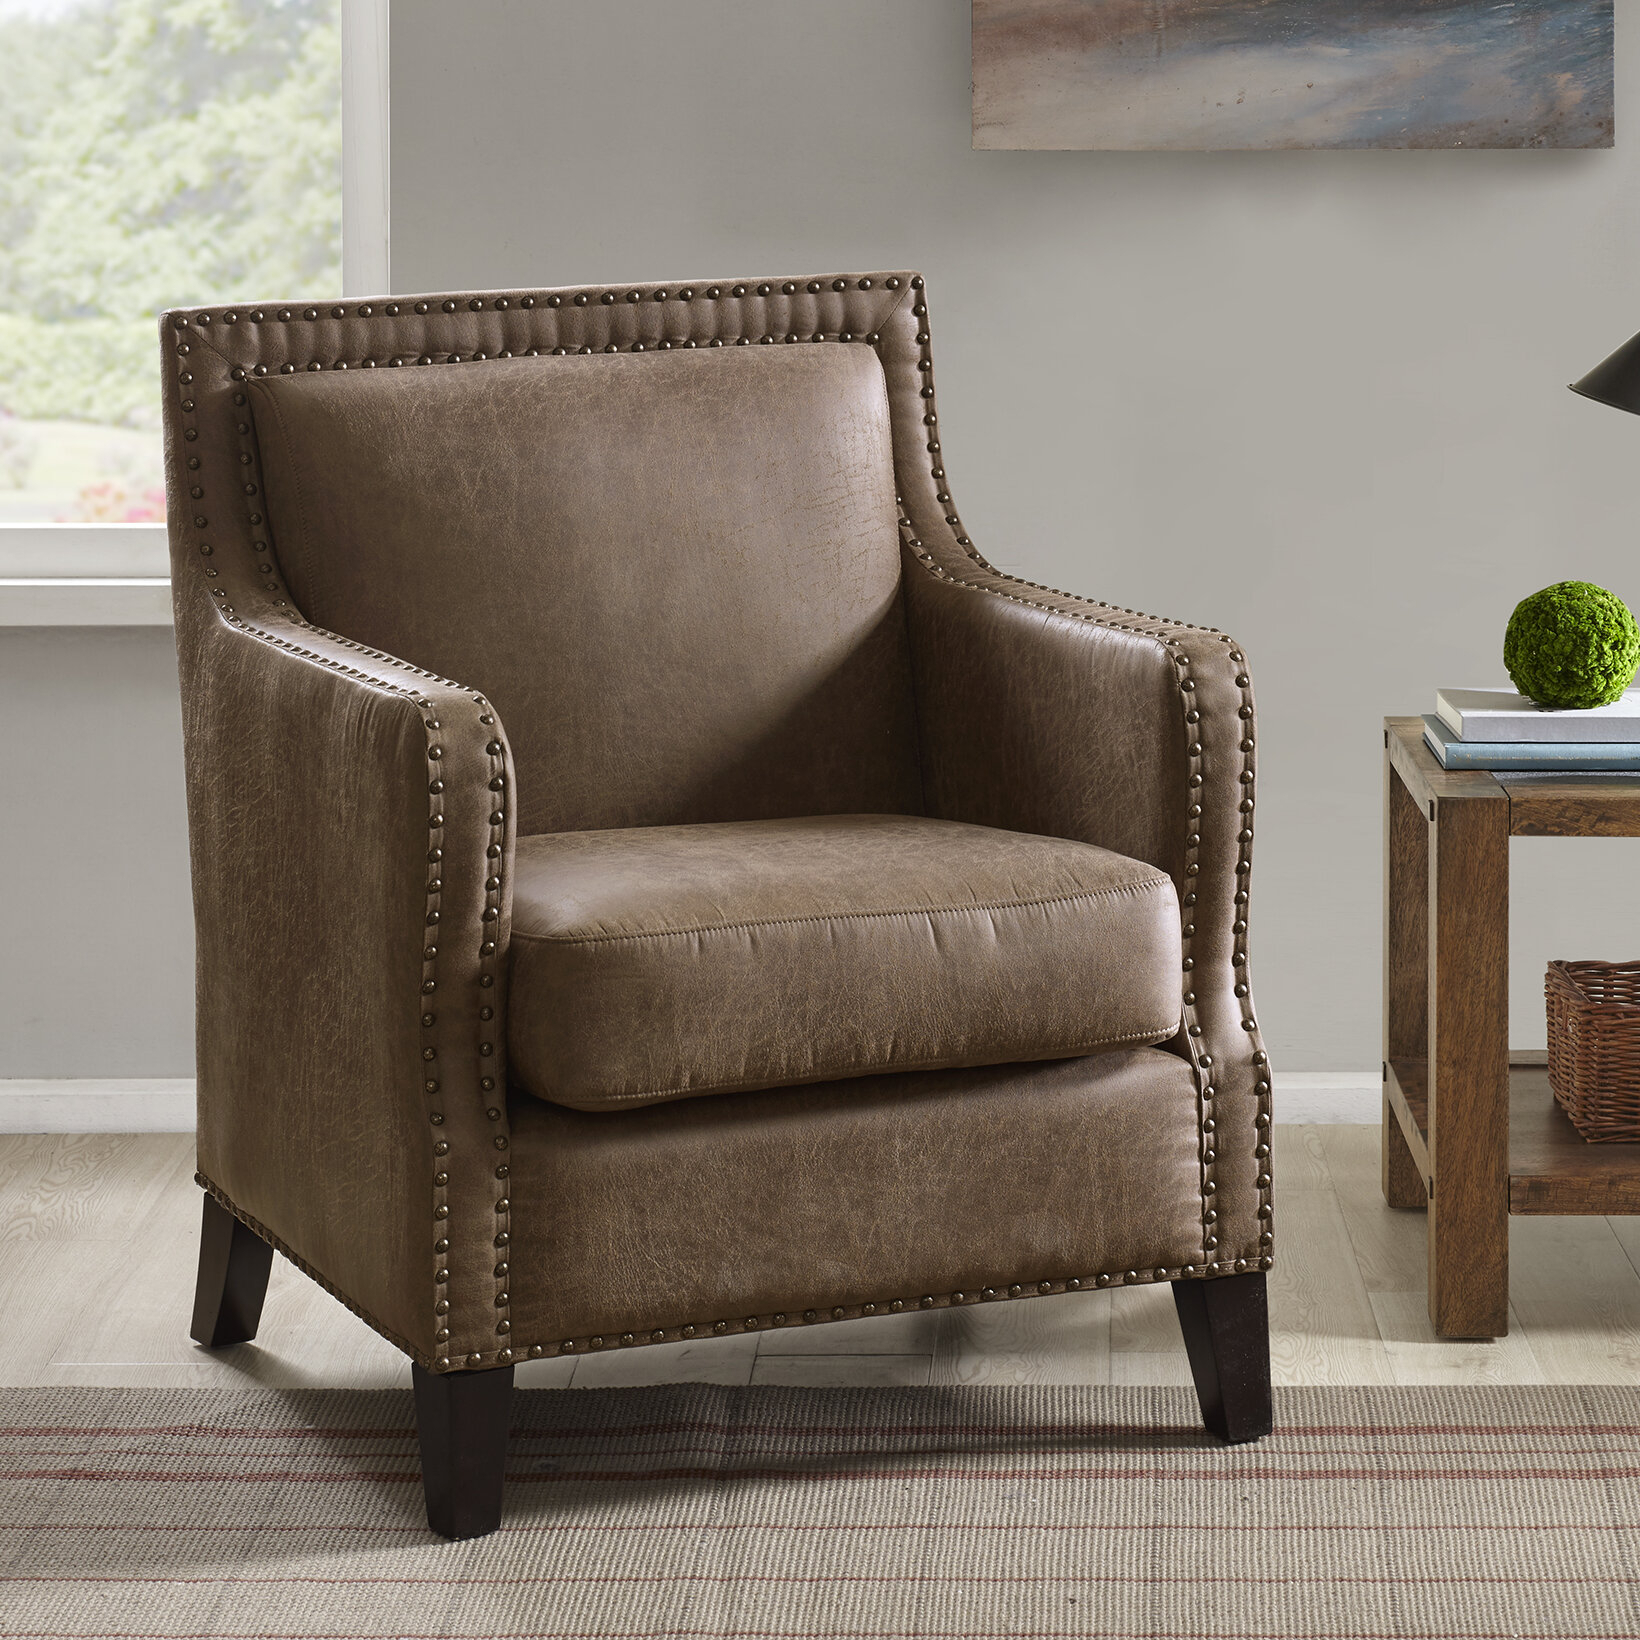 Olivar Armchair Intended For Autenberg Armchairs (View 4 of 15)